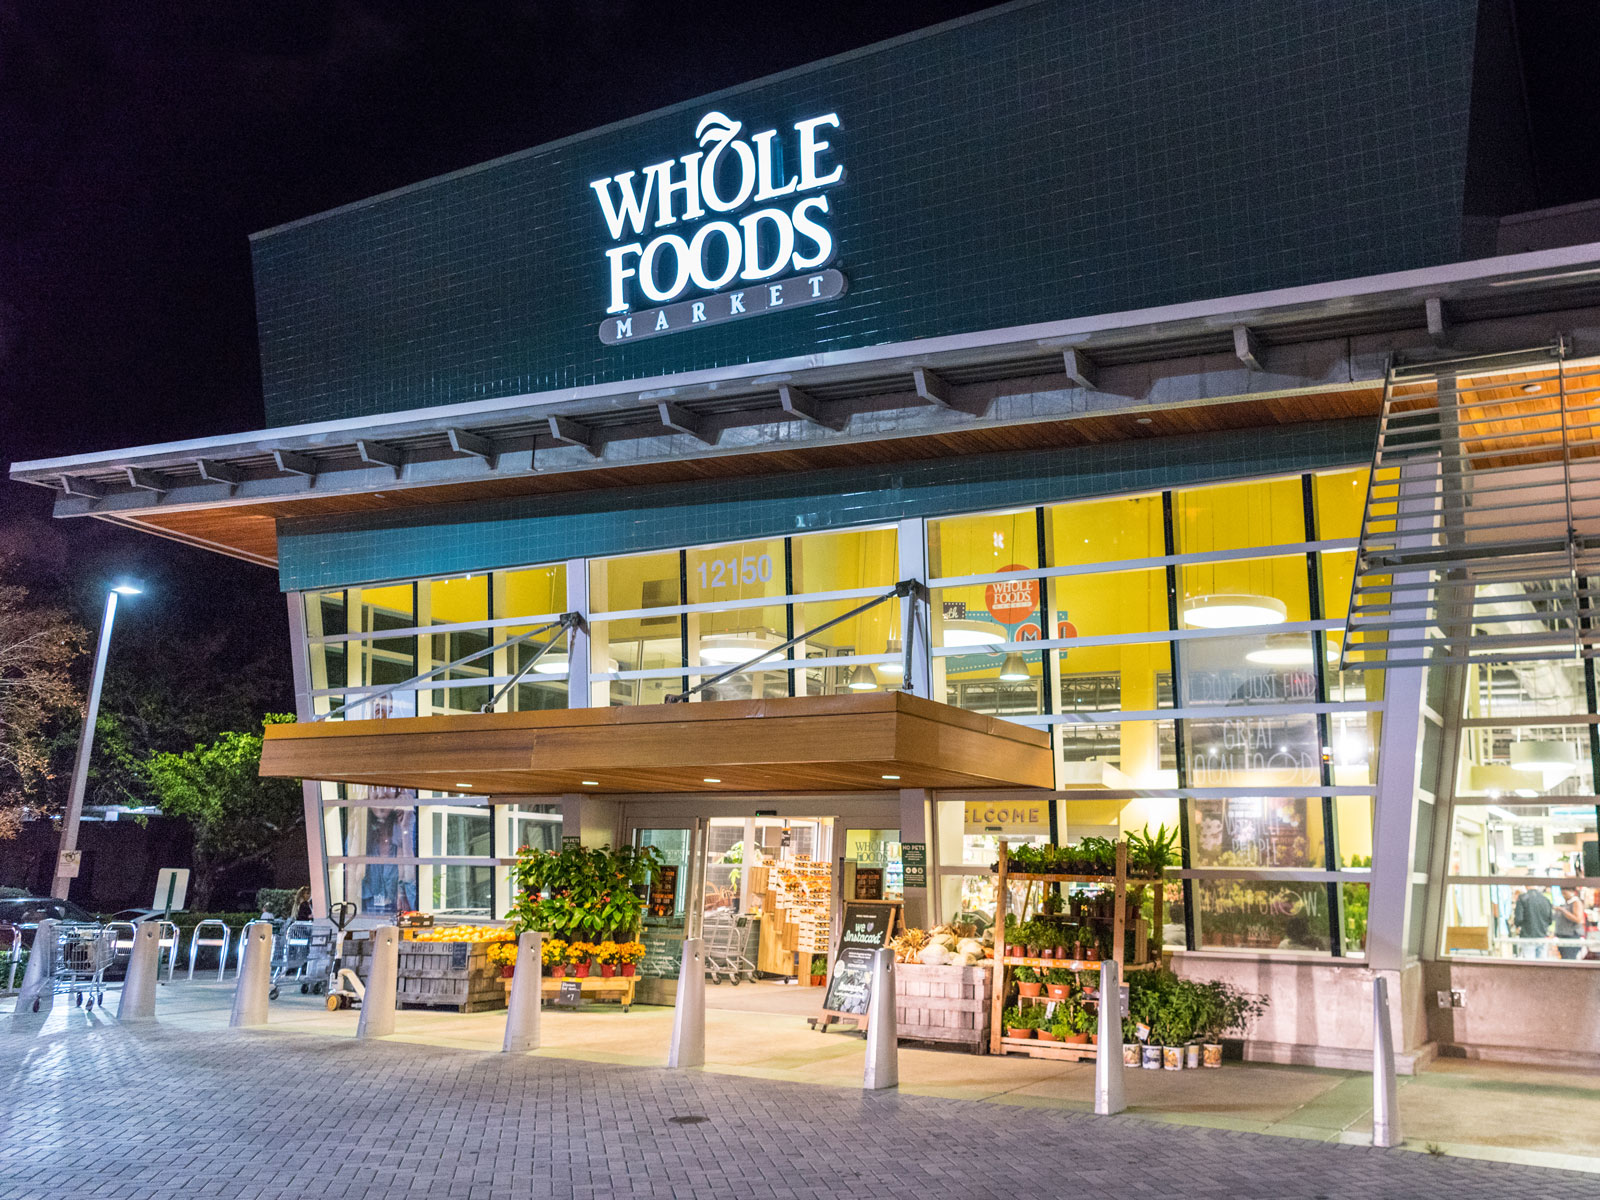 Amazon Plans Whole Foods Expansion to Reach as Many Customers as Possible